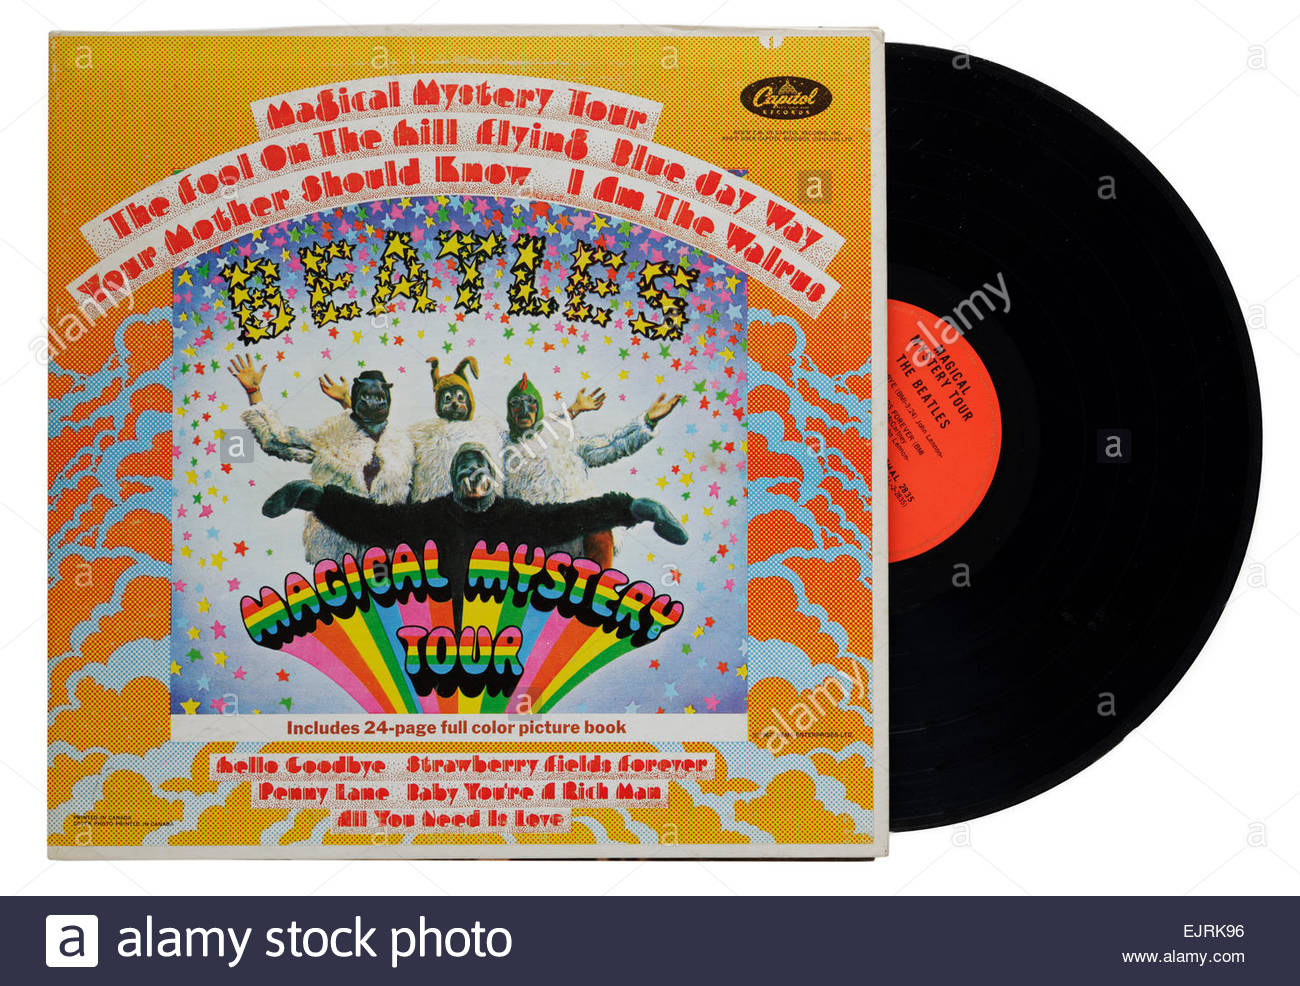 Beatles Magical Mystery Tour album - Stock Image